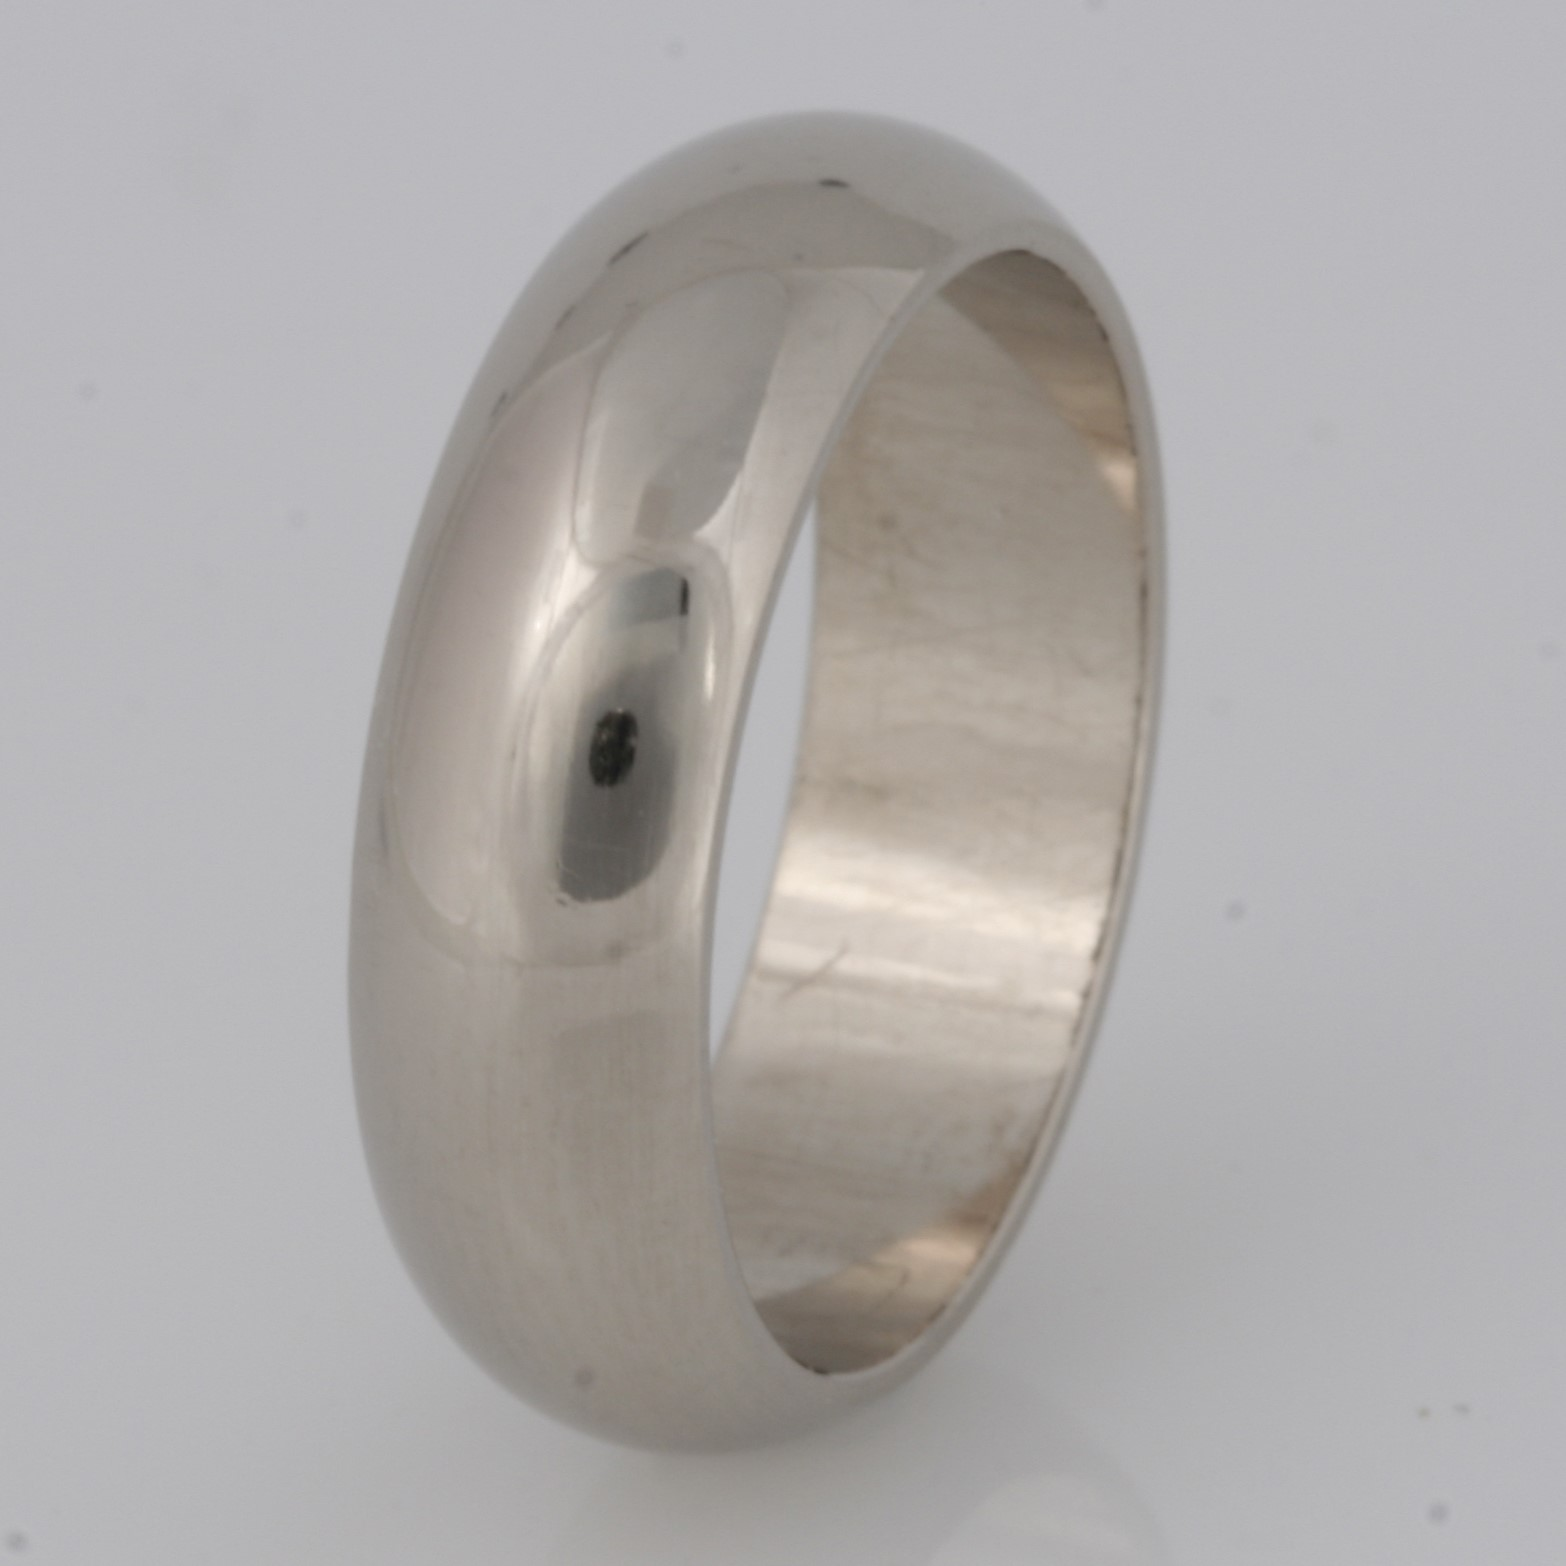 R005 18ct white gold ladies wedding ring $1450